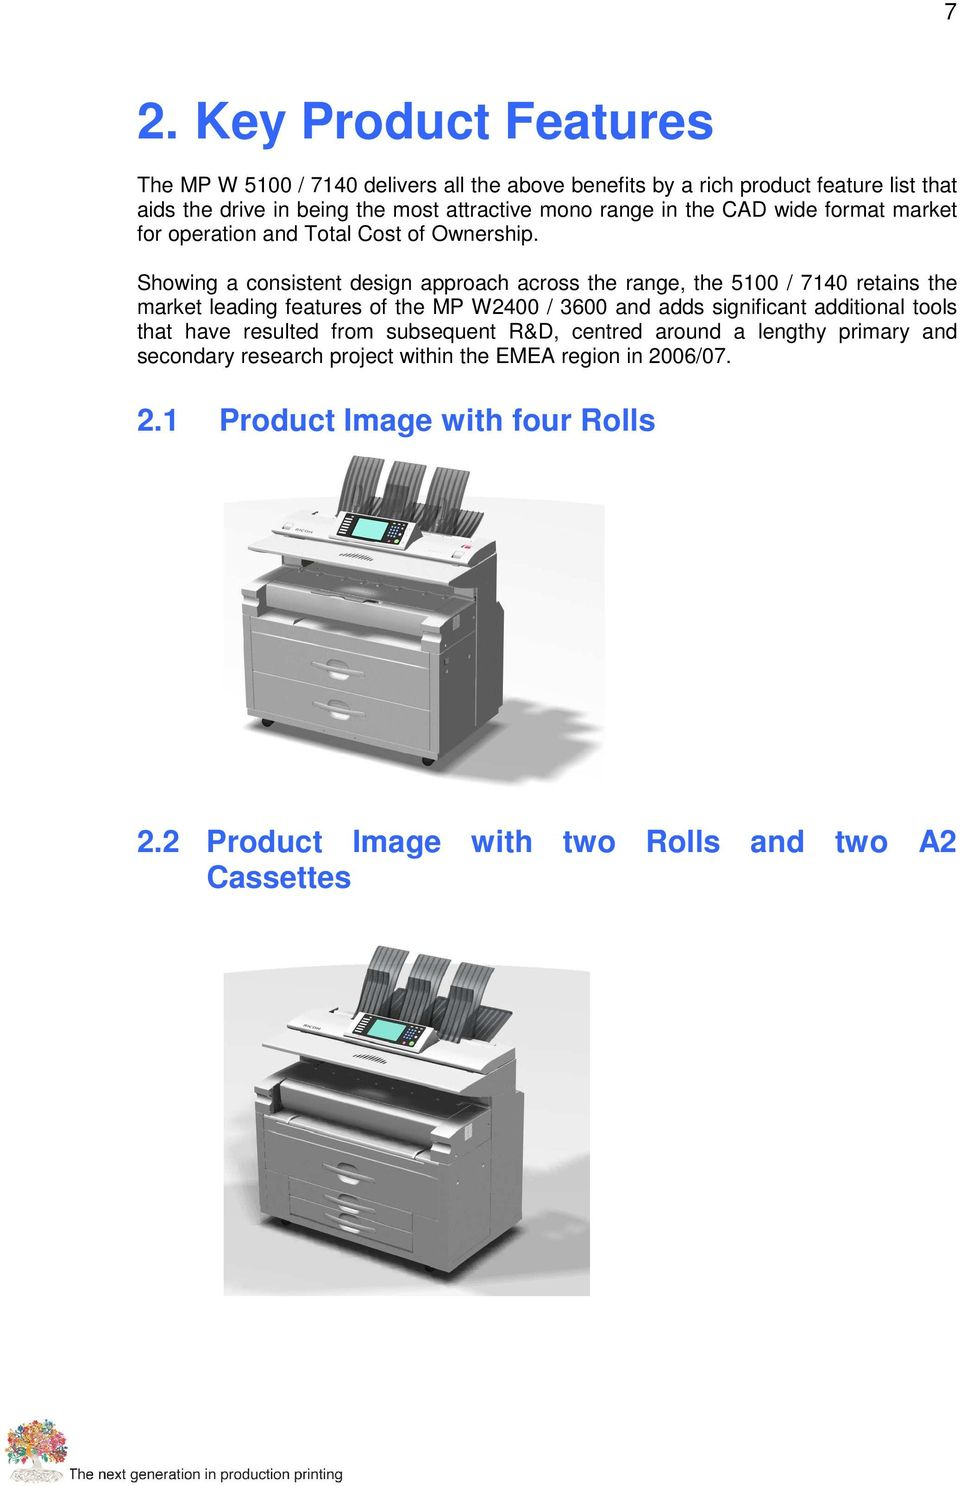 RICOH AFICIO MP W7140 PPD DRIVERS WINDOWS 7 (2019)